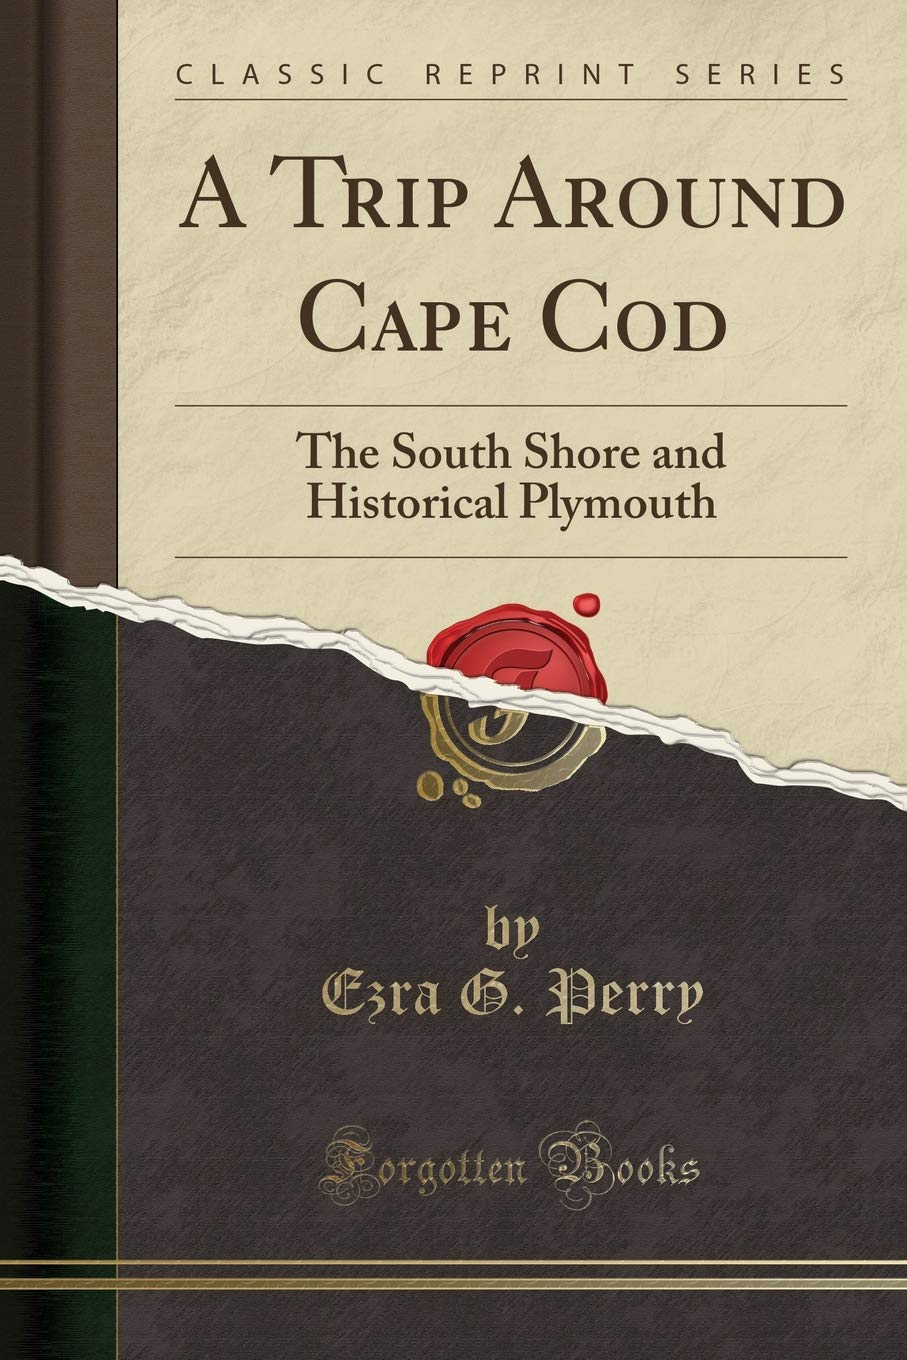 A Trip Around Cape Cod: The South Shore and Historical